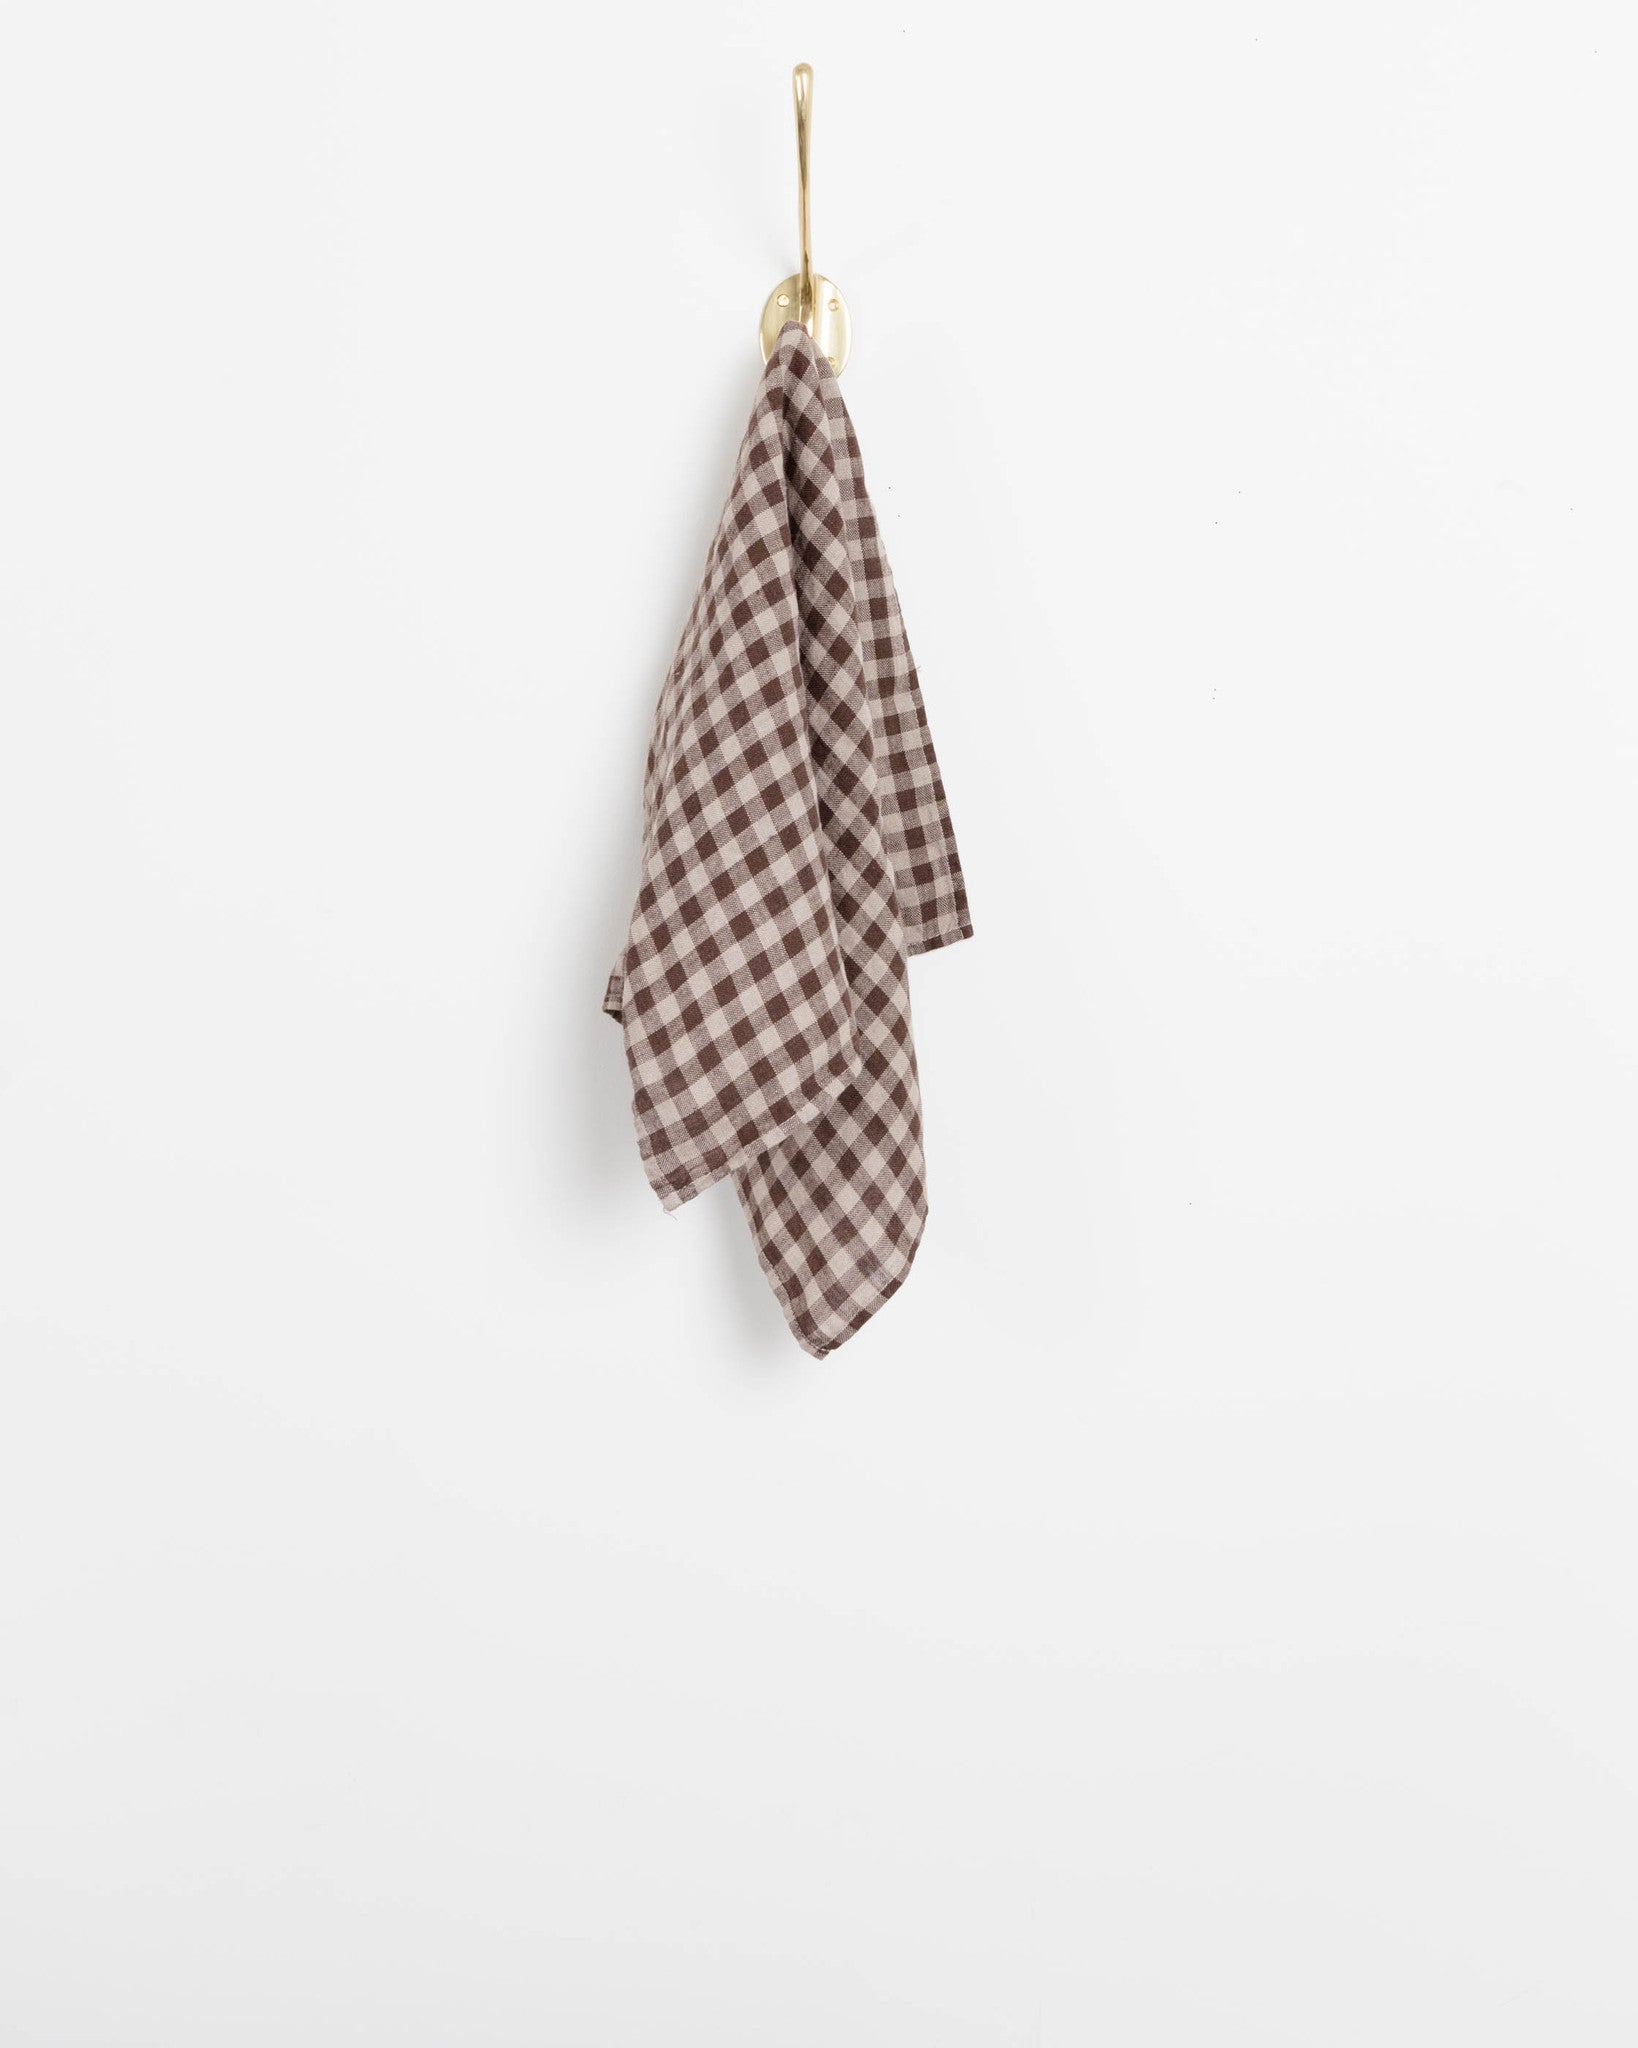 Fog Linen Kitchen Towel in Natural Plaid